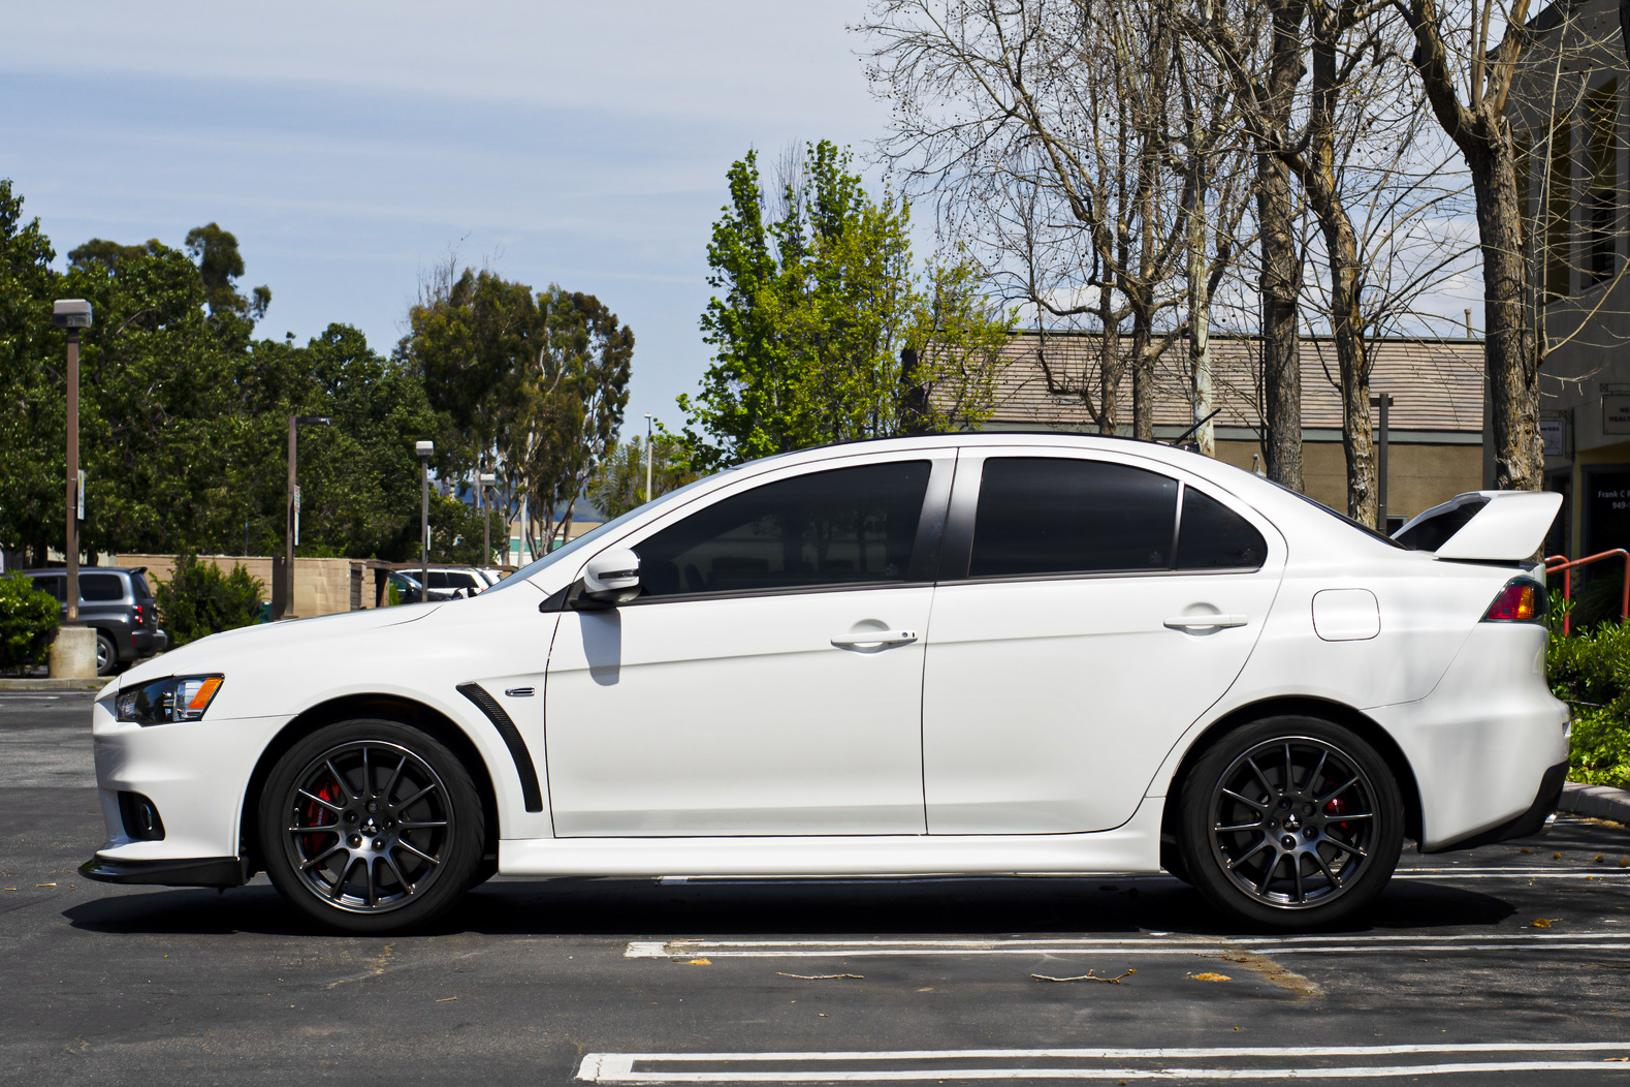 2015 Mitsubishi Evo 'Final Edition'